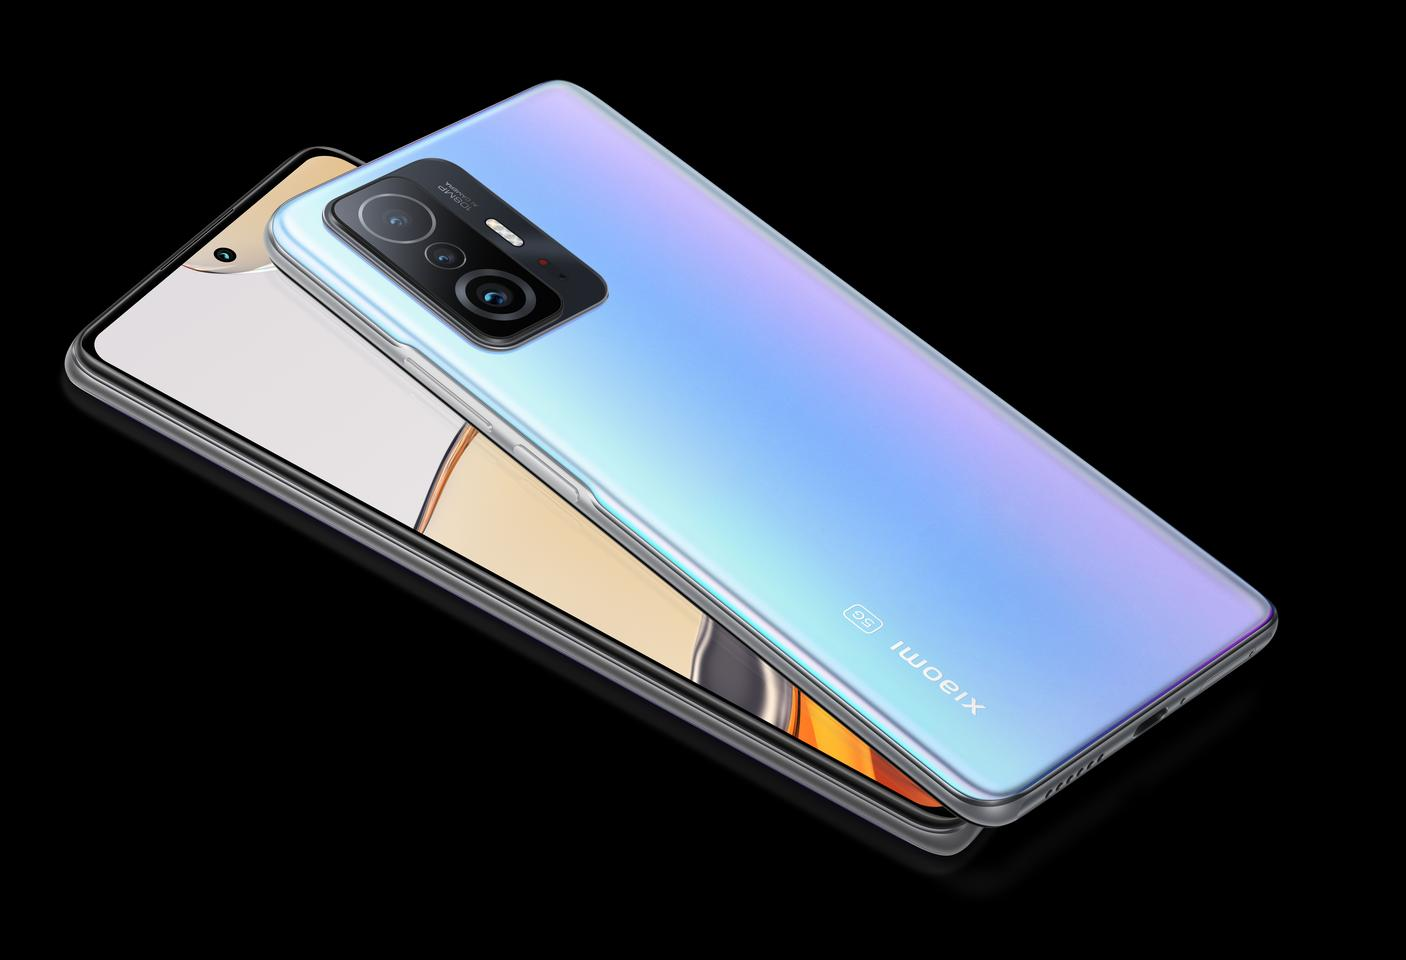 The 11T Pro smartphone is the first to launch worldwide with Xiaomi's 120-W HyperCharge technology